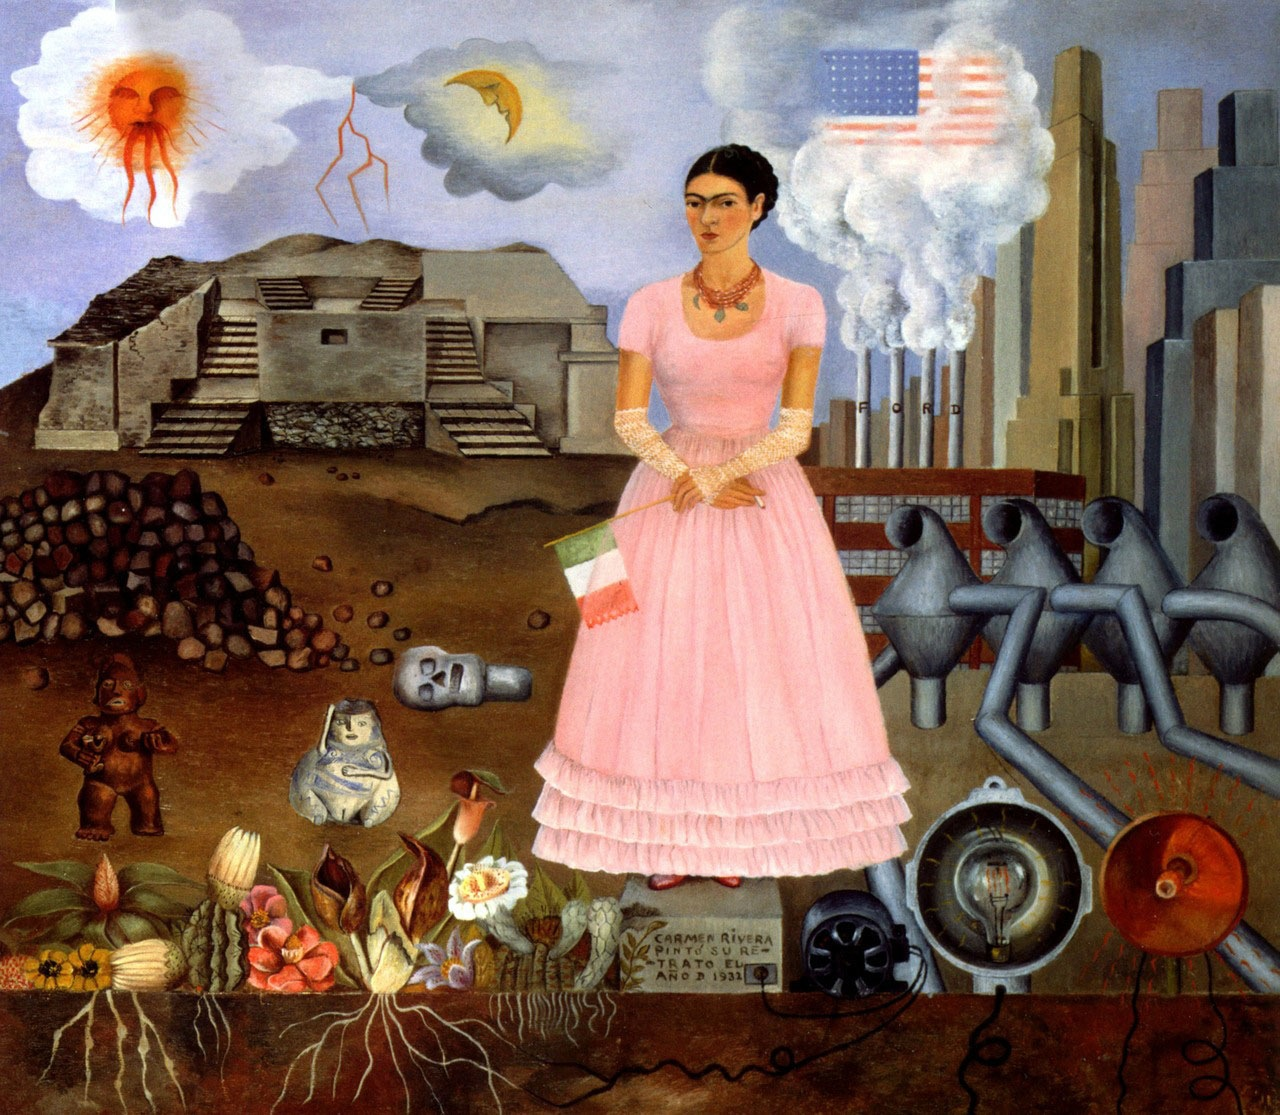 Arte De Mexico Beds Detroit Through The Eyes Of Diego Rivera And Frida Kahlo